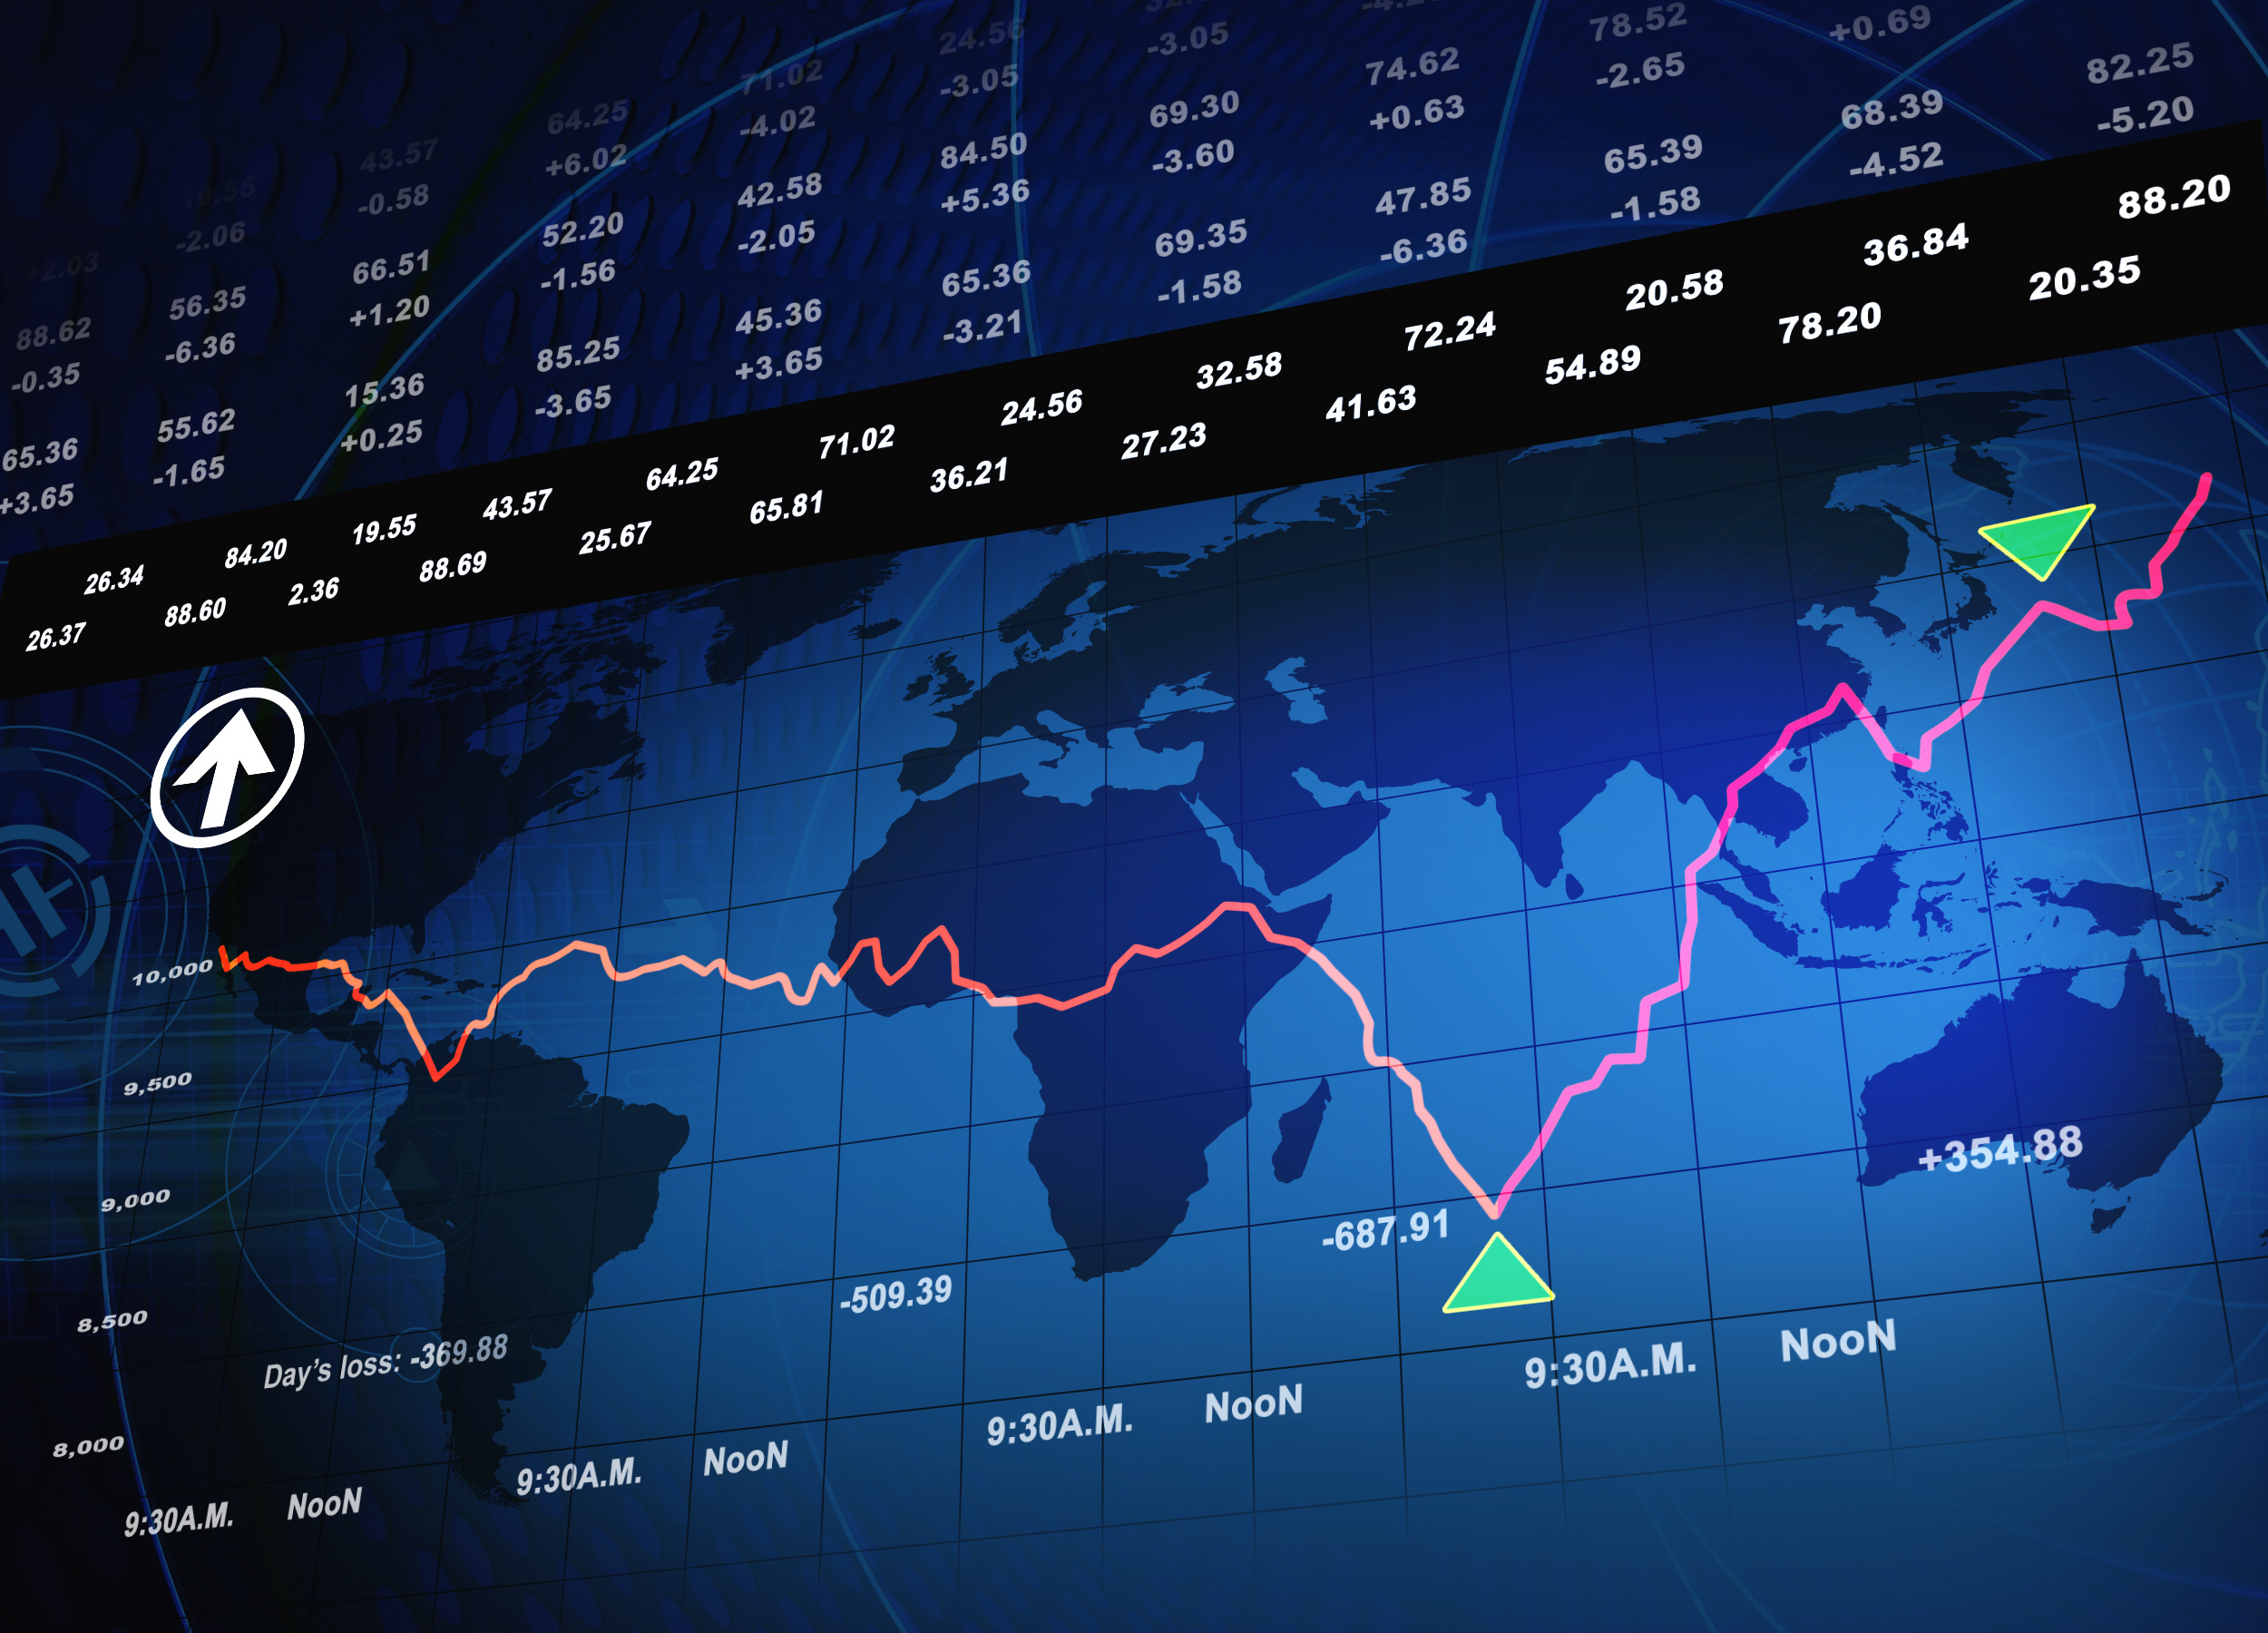 International finance and capital markets finance